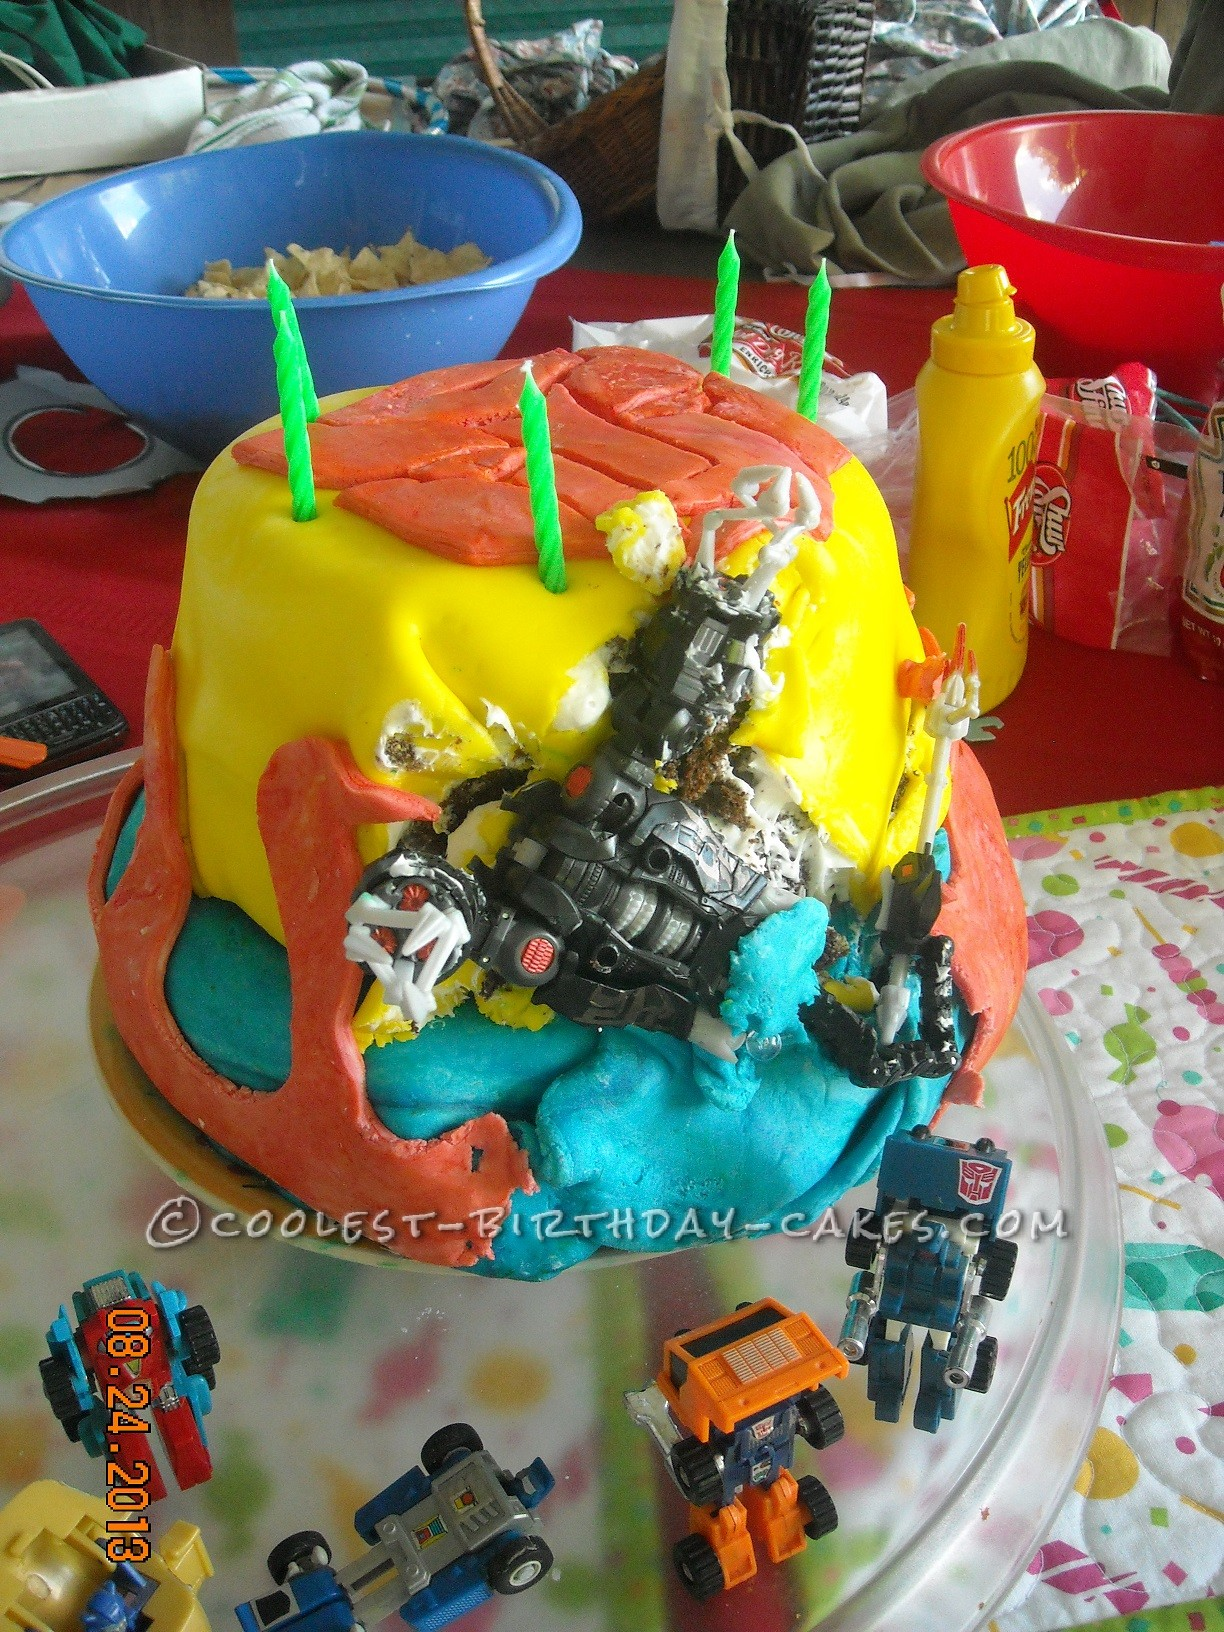 Coolest Transformers Cake - Destroyed by Scorponok